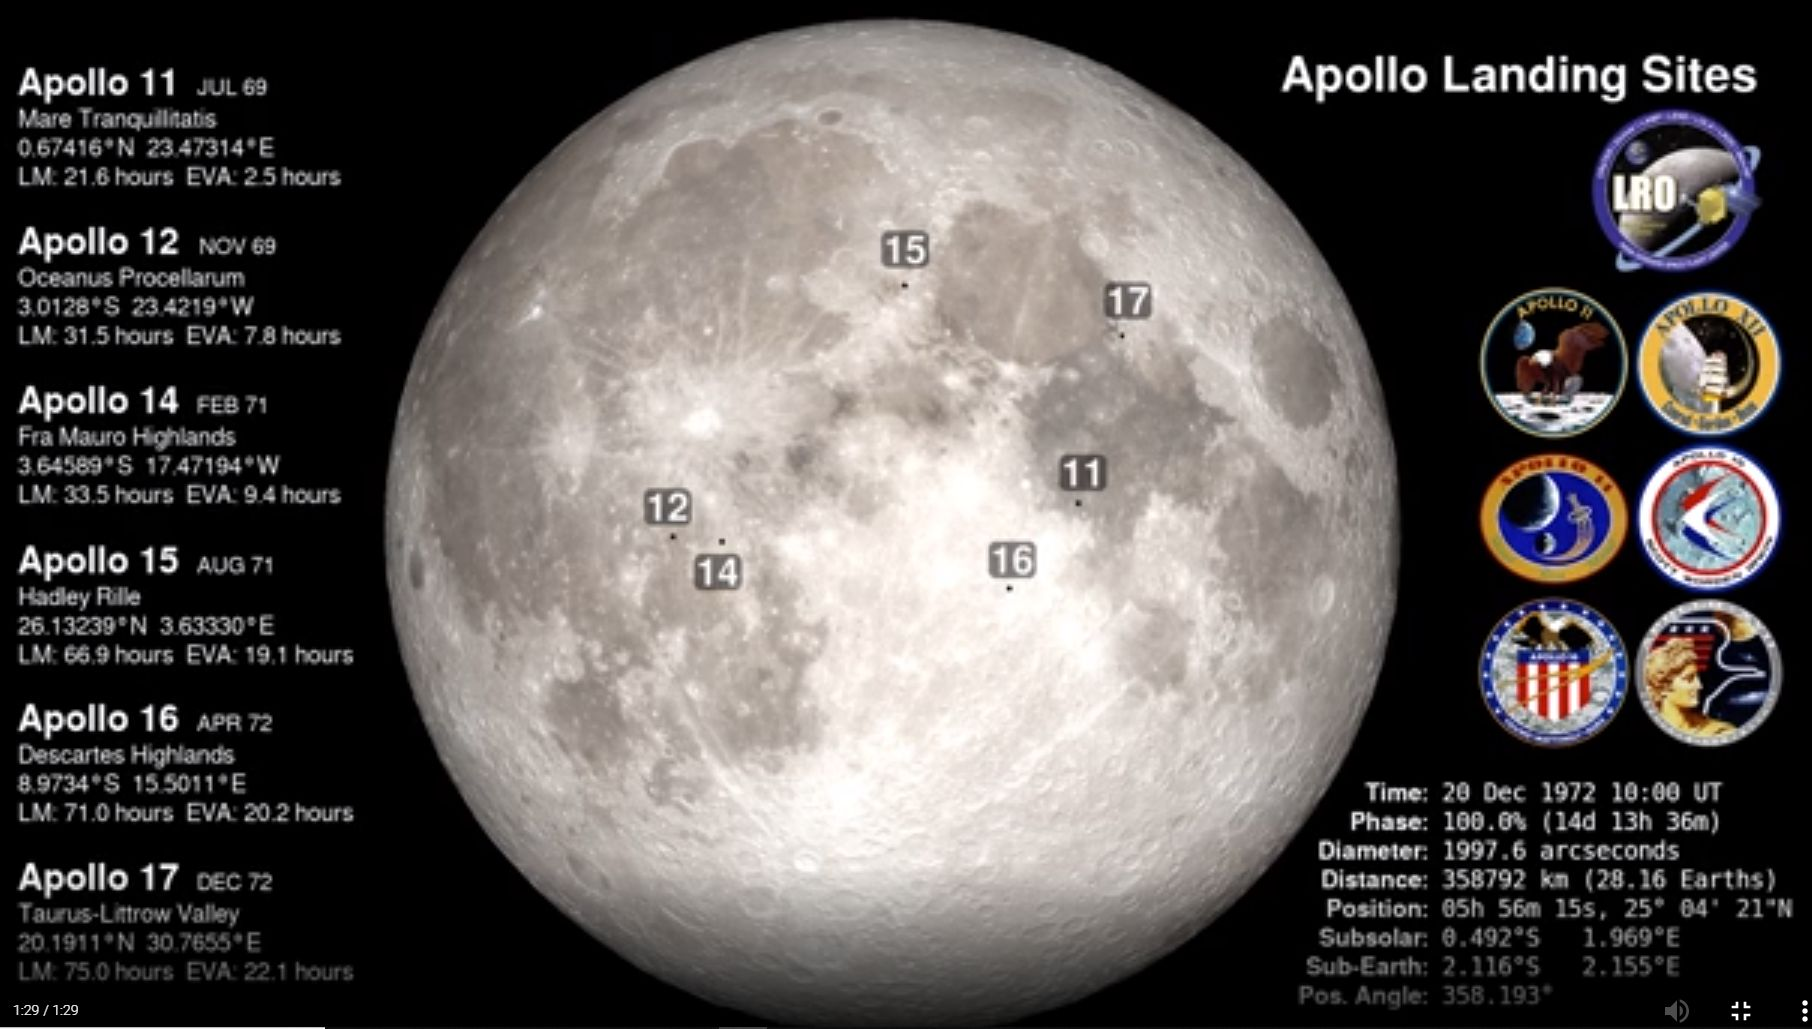 Apollo landing sites, click to see video